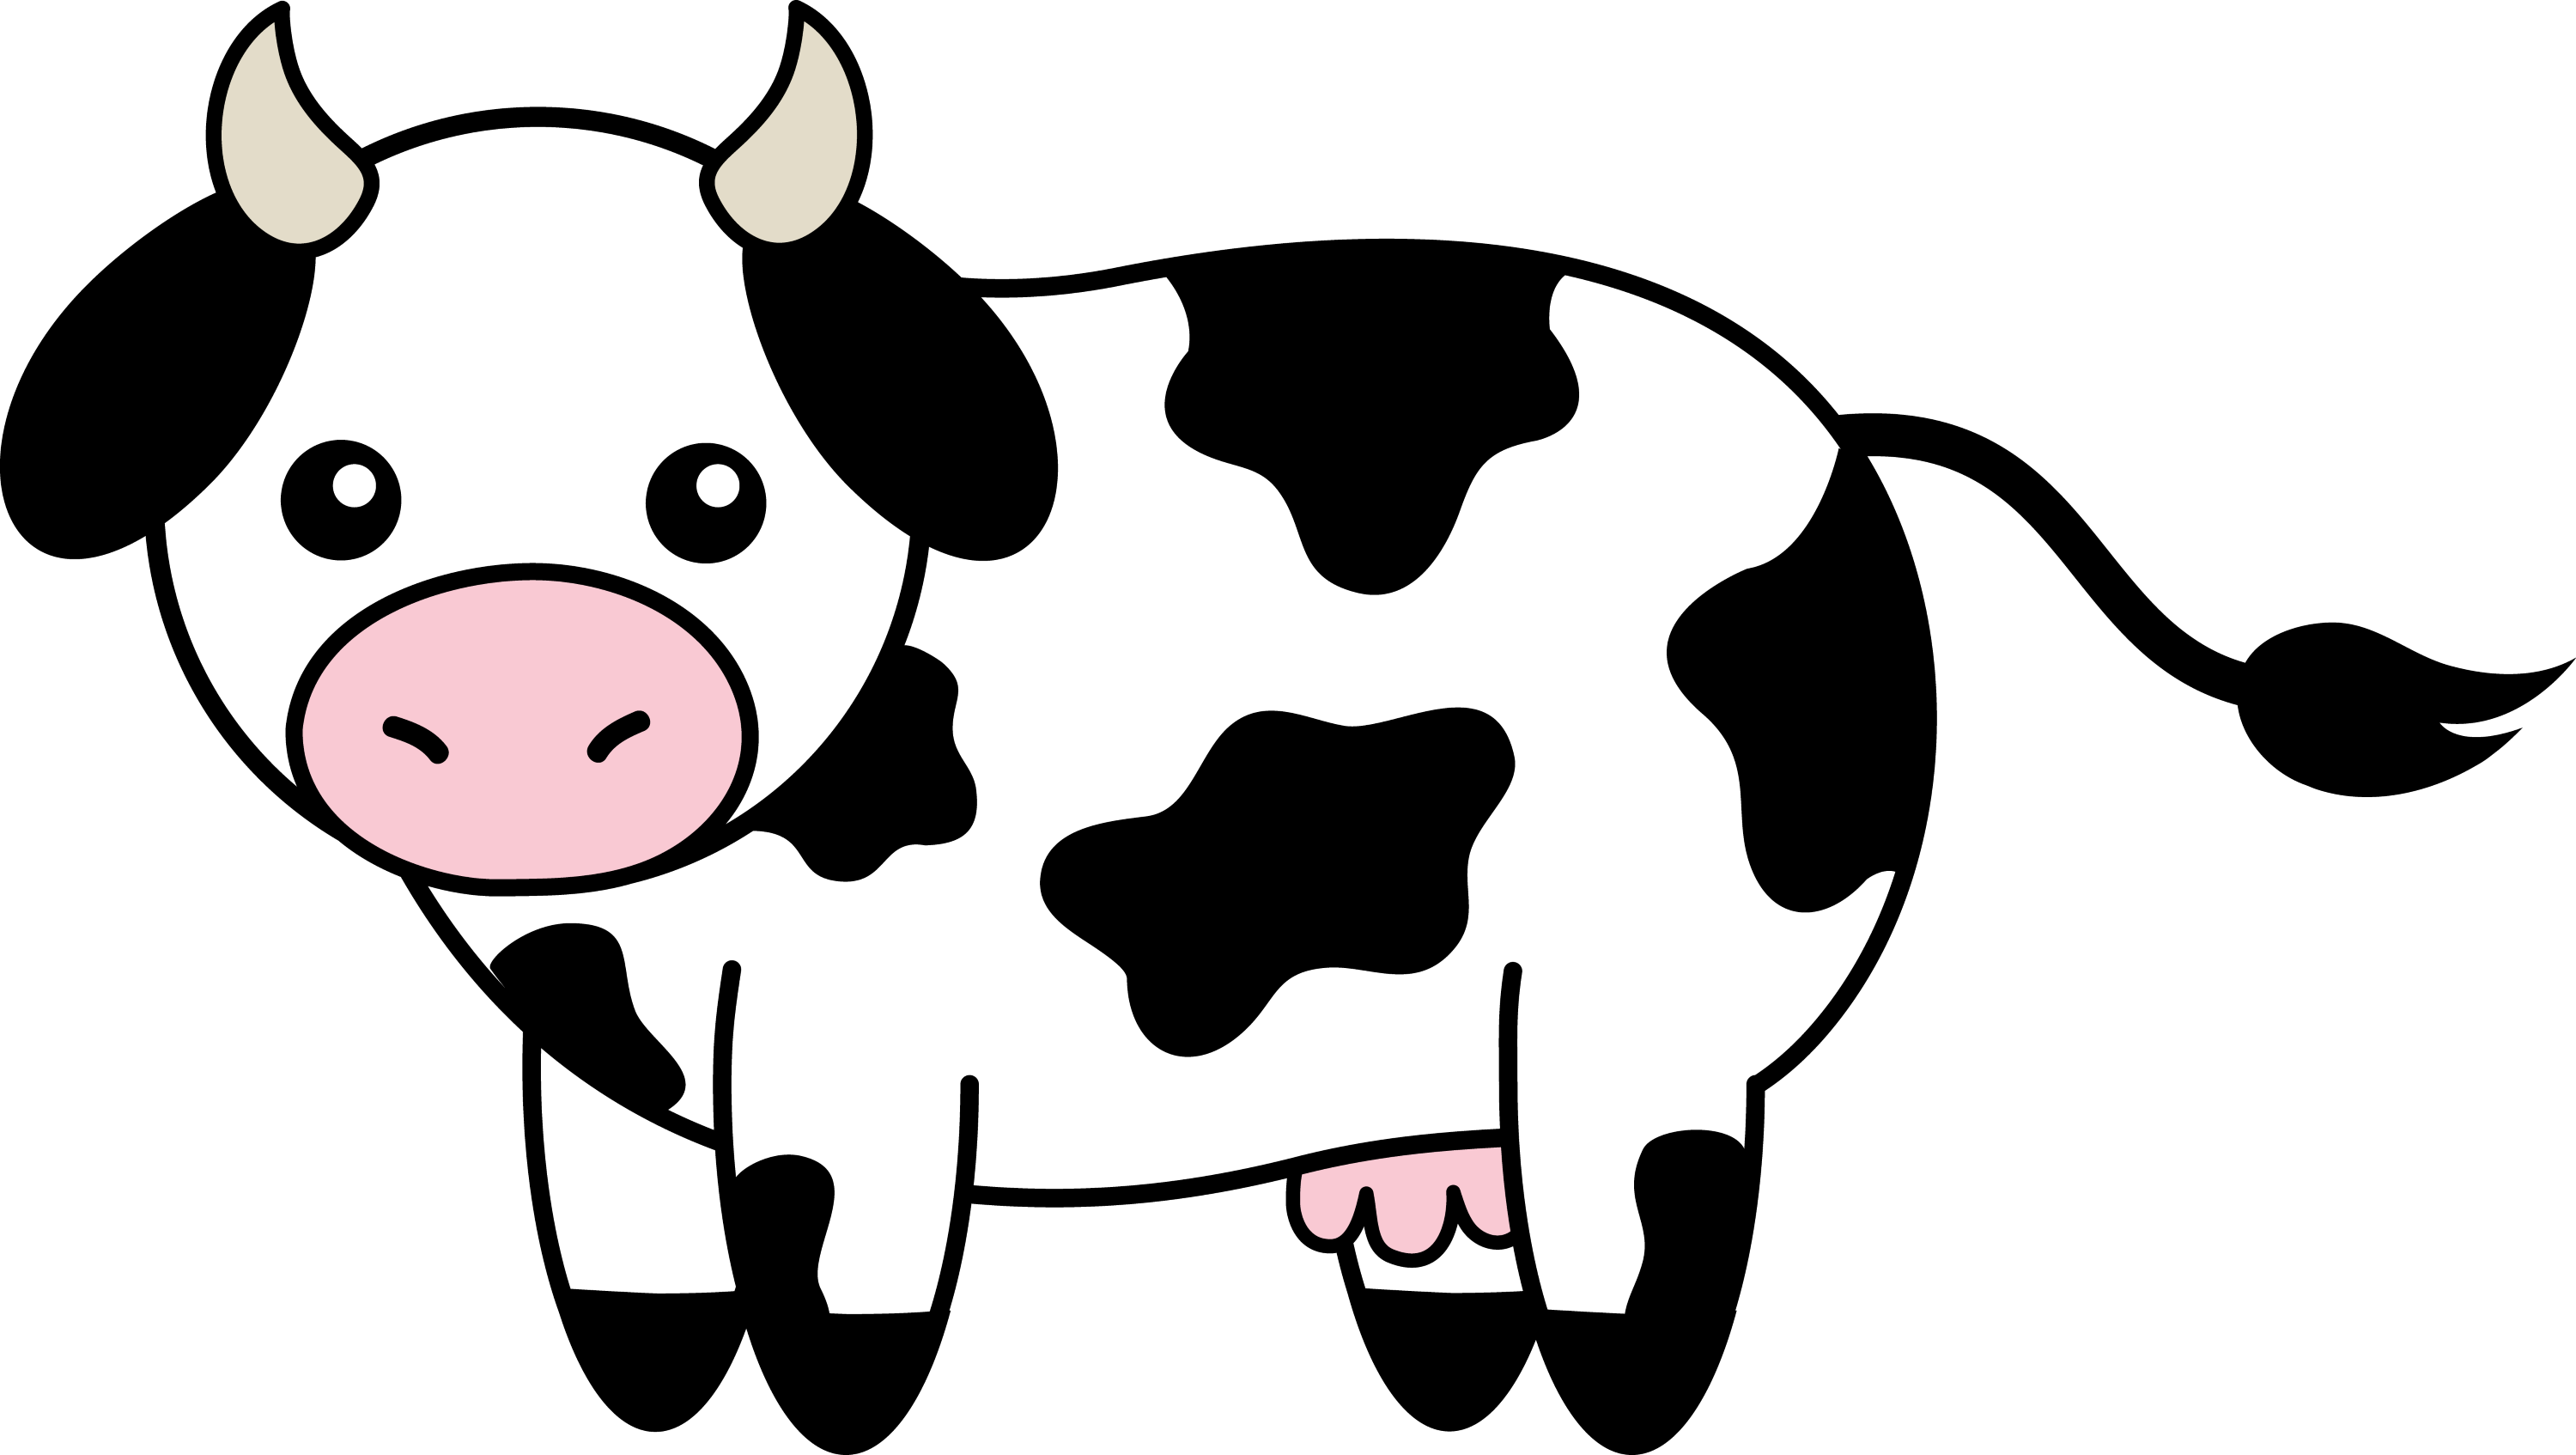 Cute Black and White Cow - Free Clip Art